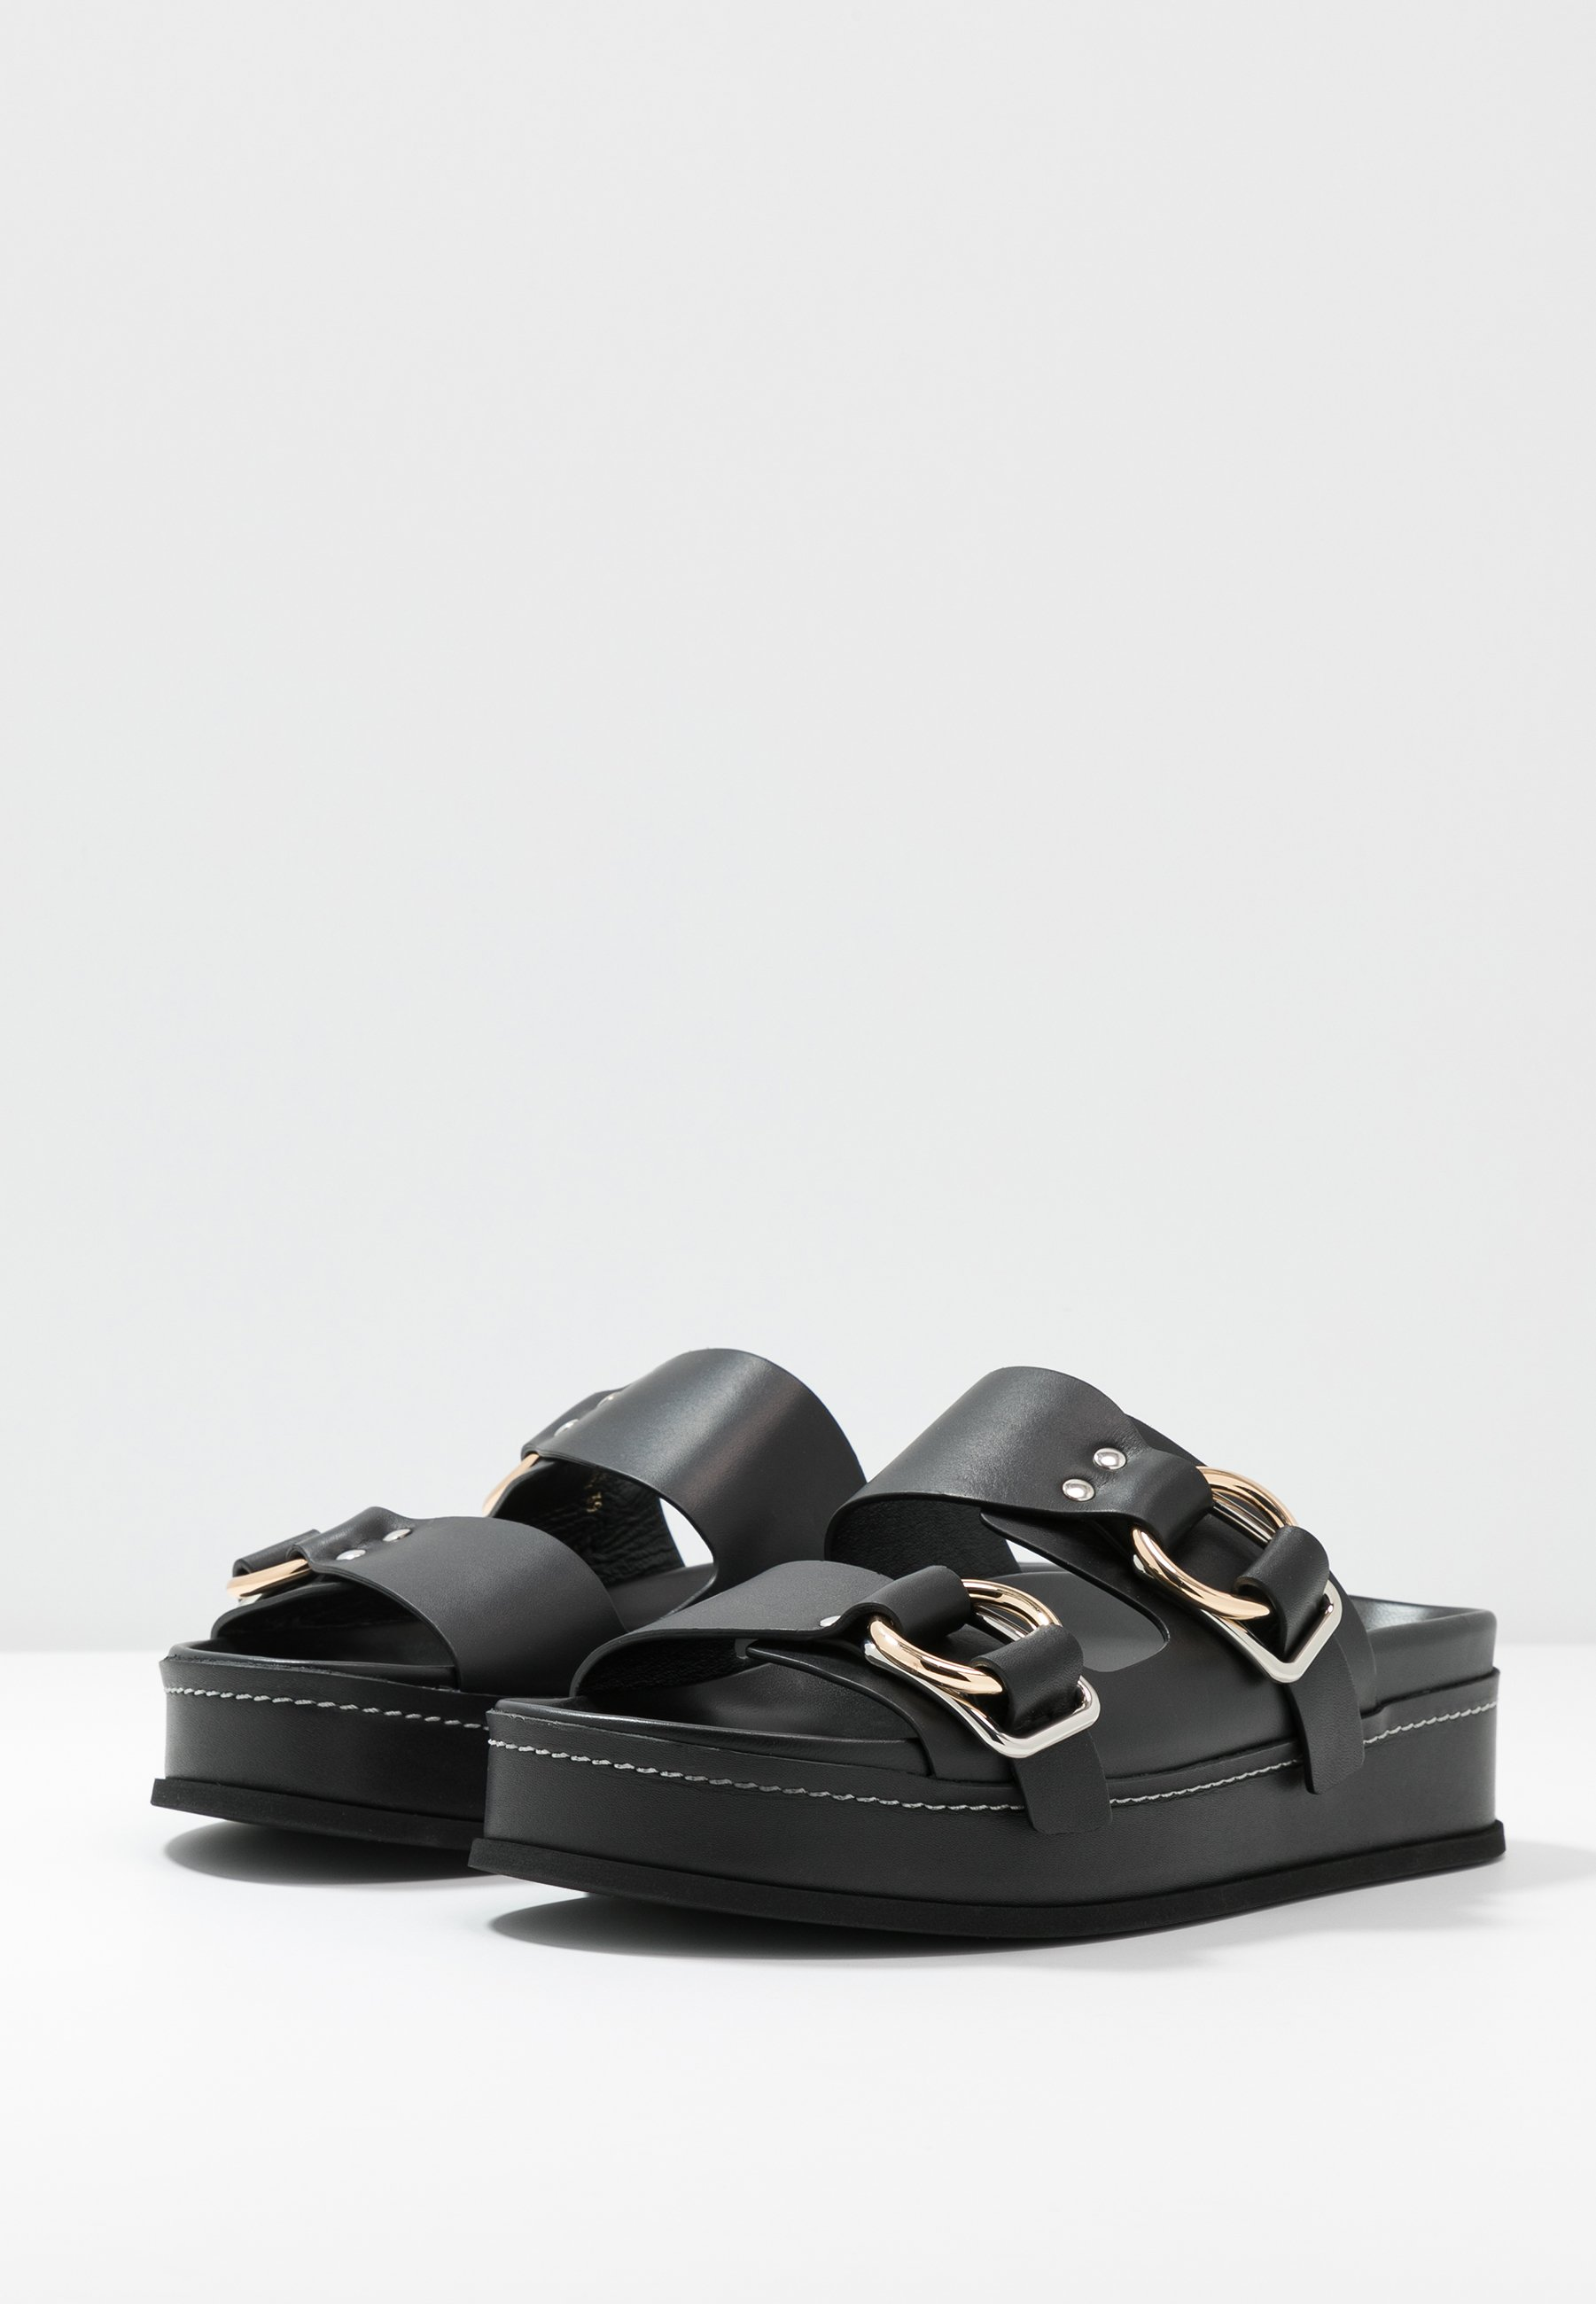 3.1 Phillip Lim Freida Platform Double Buckle Slide - Slip-ins Black